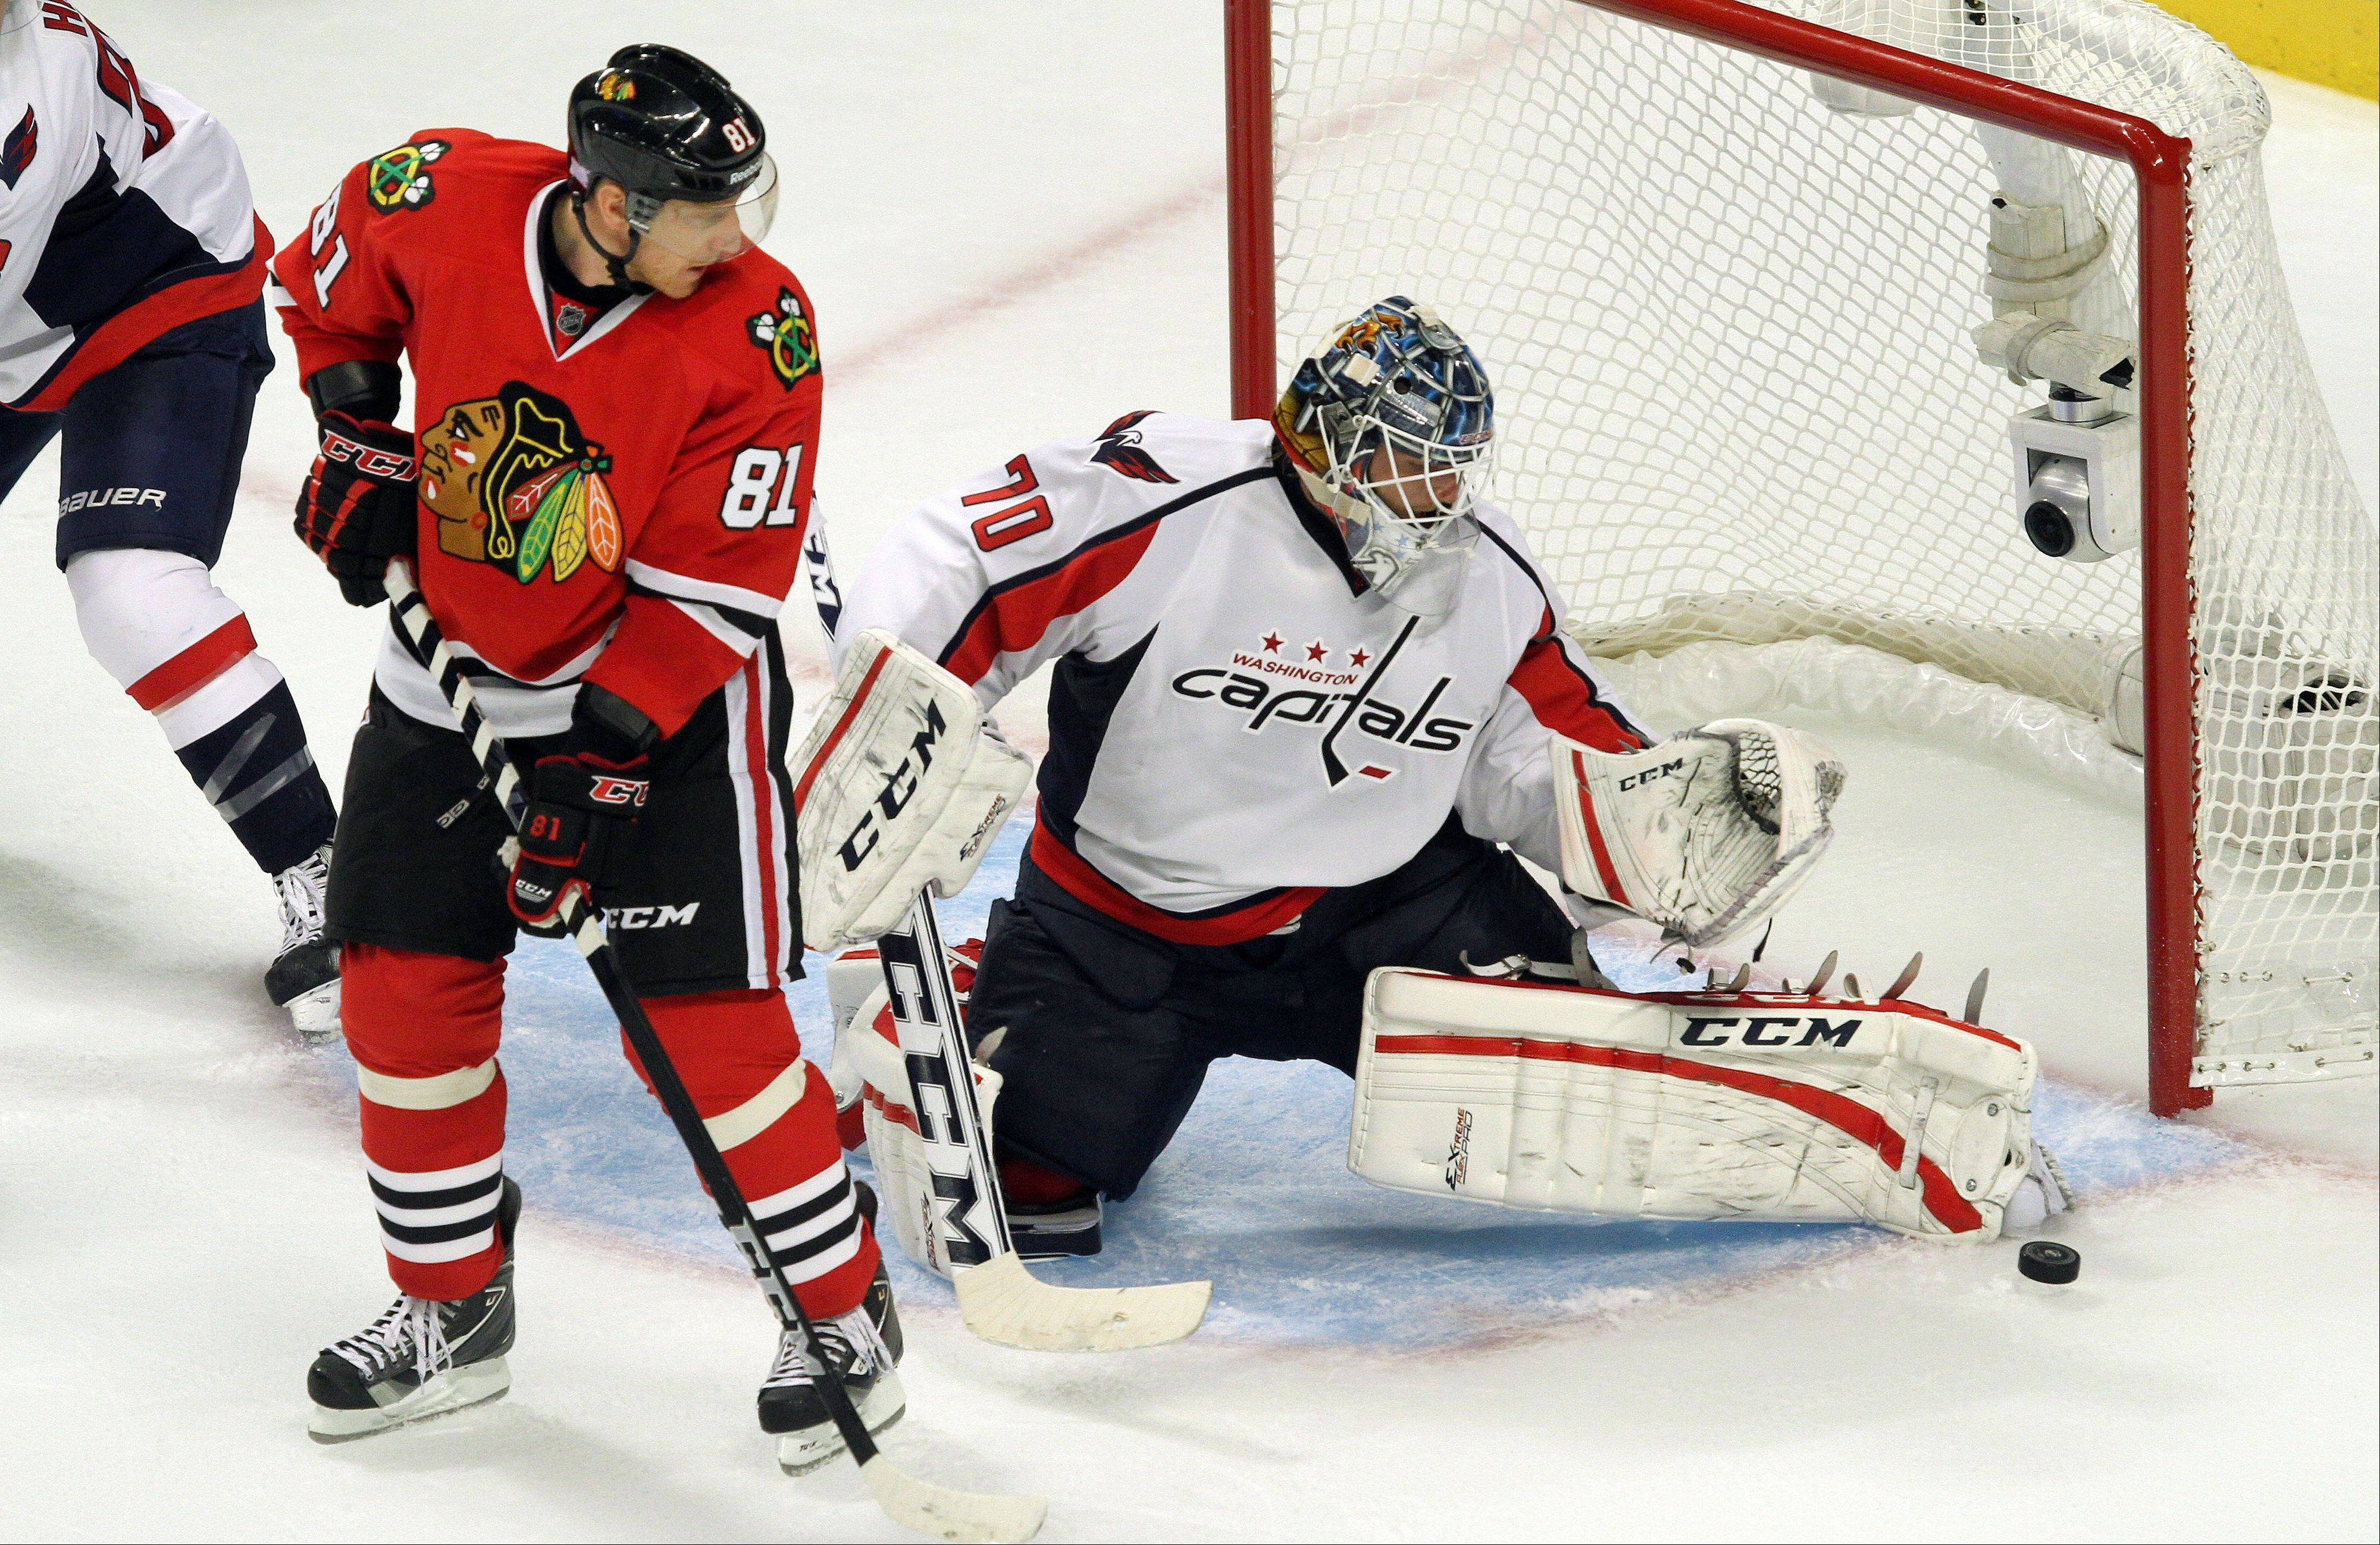 Chicago Blackhawks right wing Marian Hossa shoots on Washington Capitals goalie Braden Holtby.